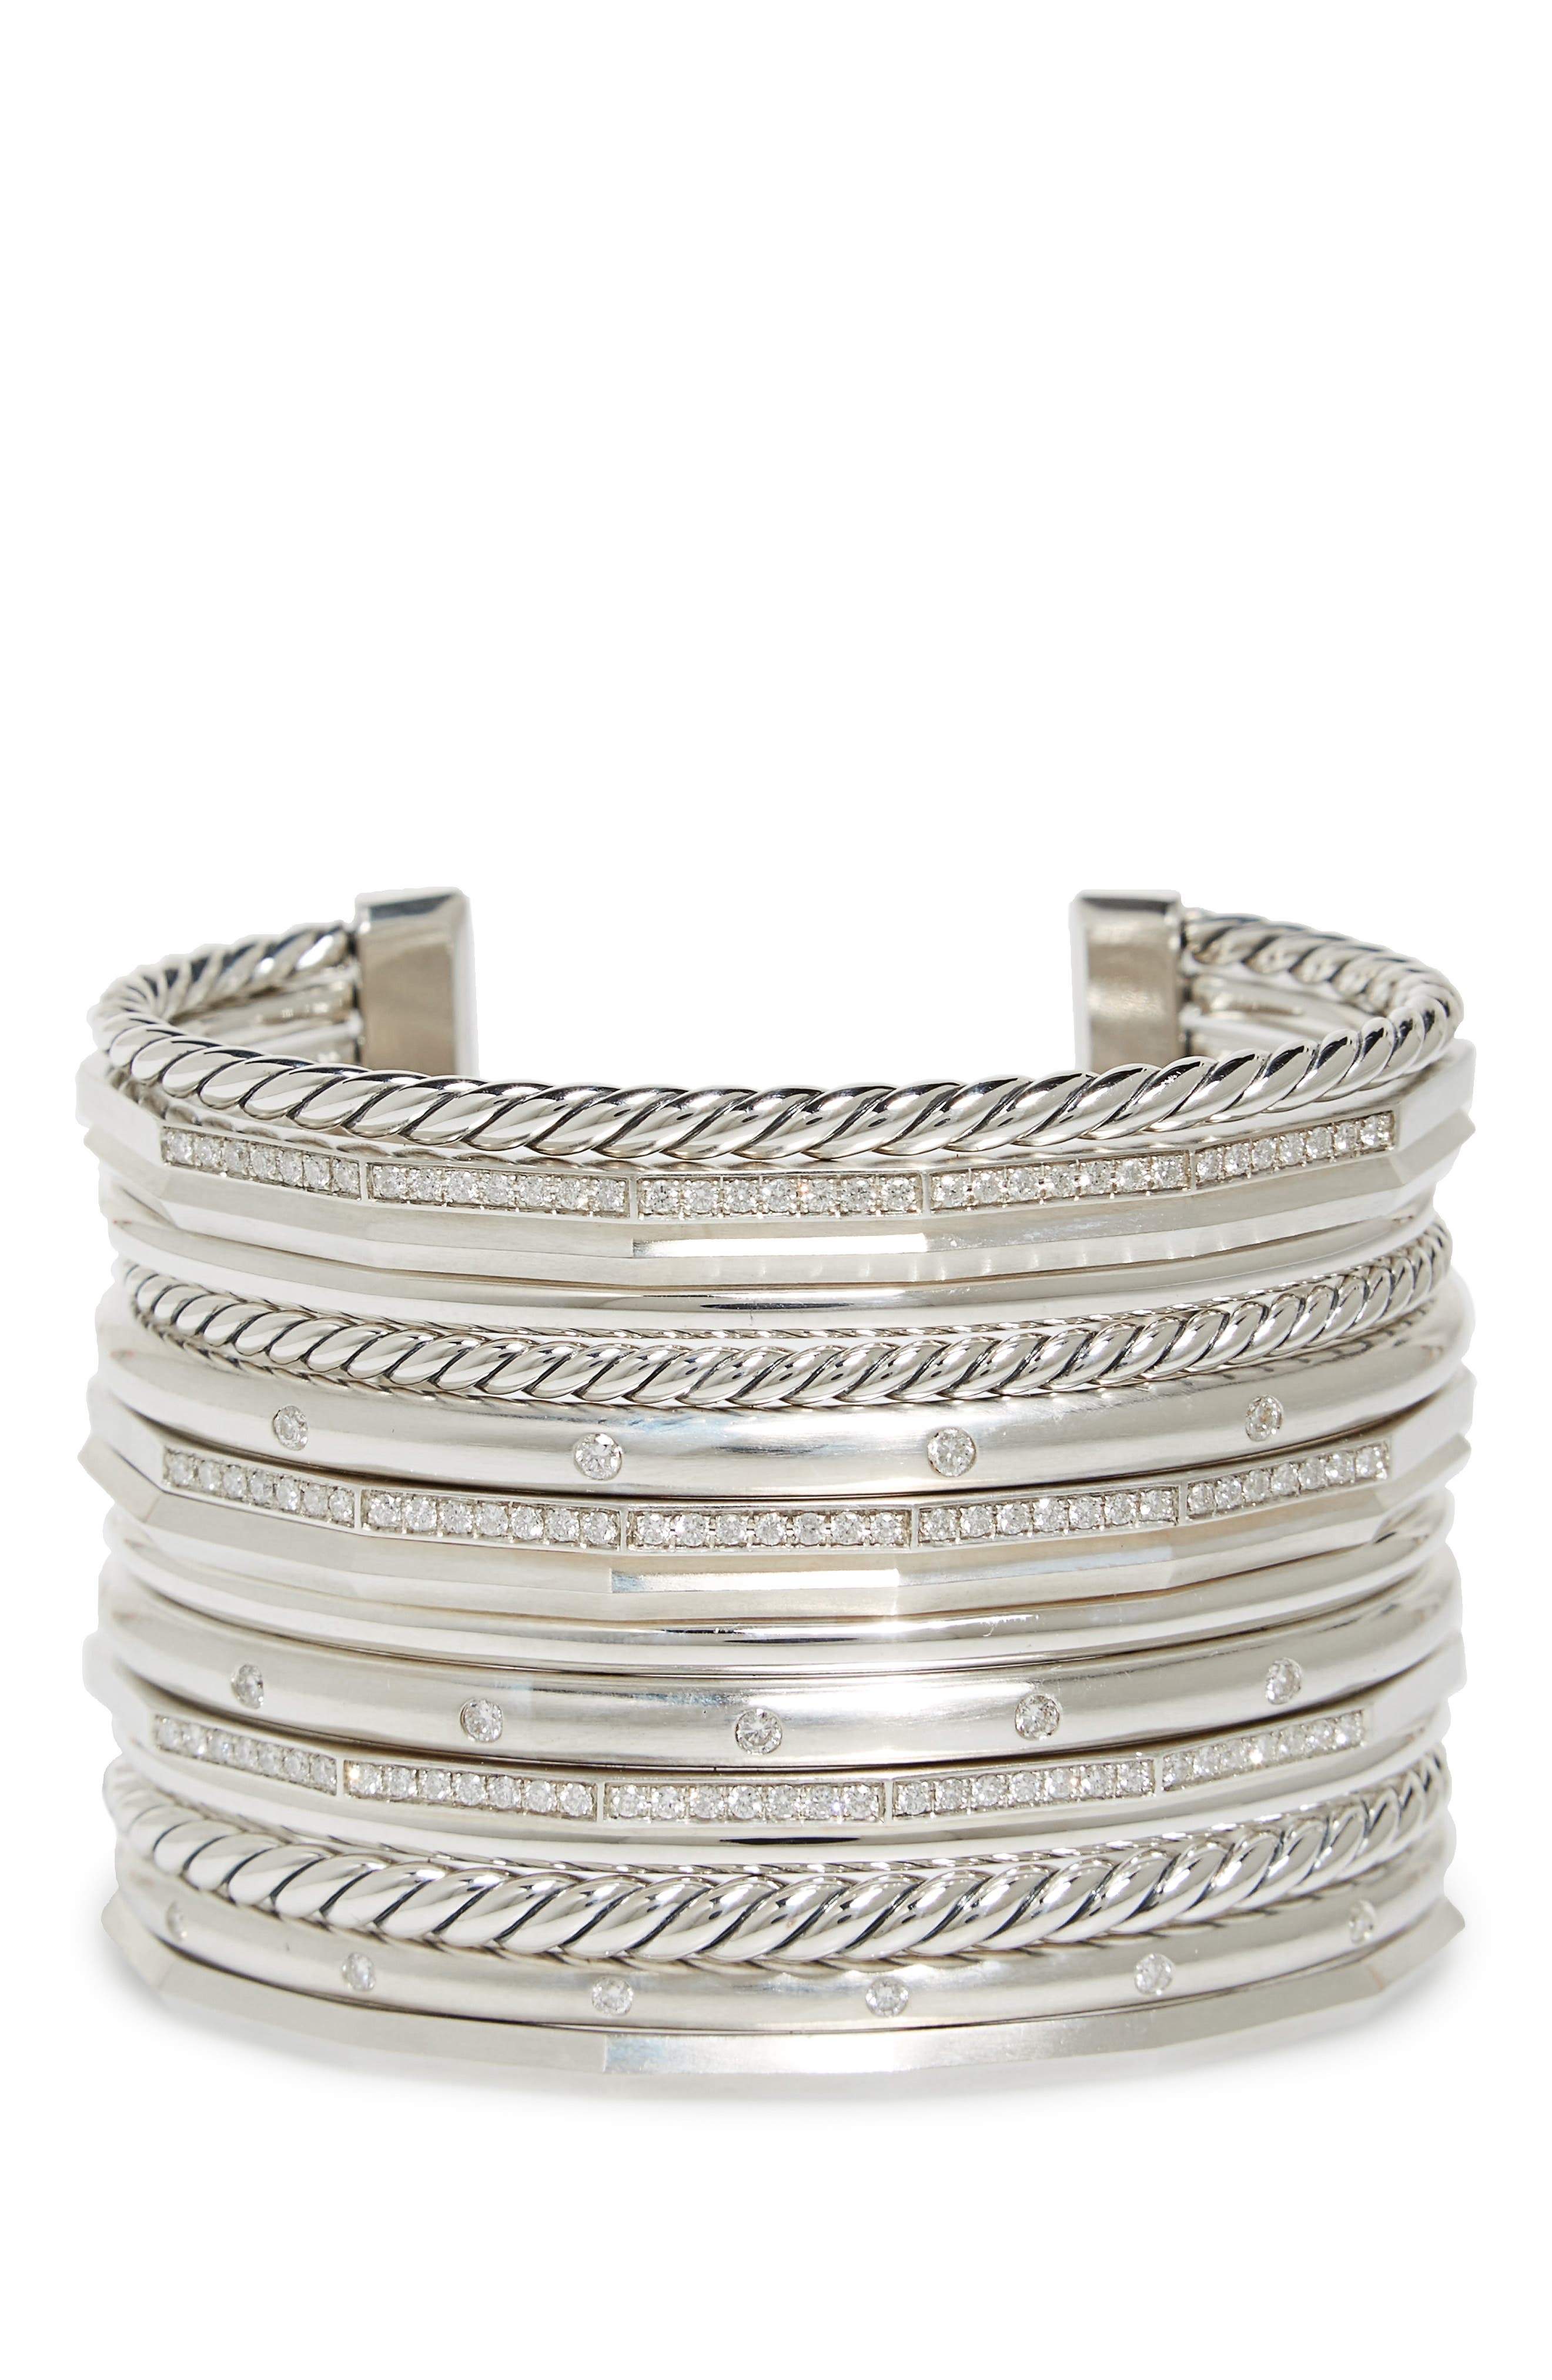 Stax Wide Cuff Bracelet with Diamonds, 54mm,                             Main thumbnail 1, color,                             SILVER